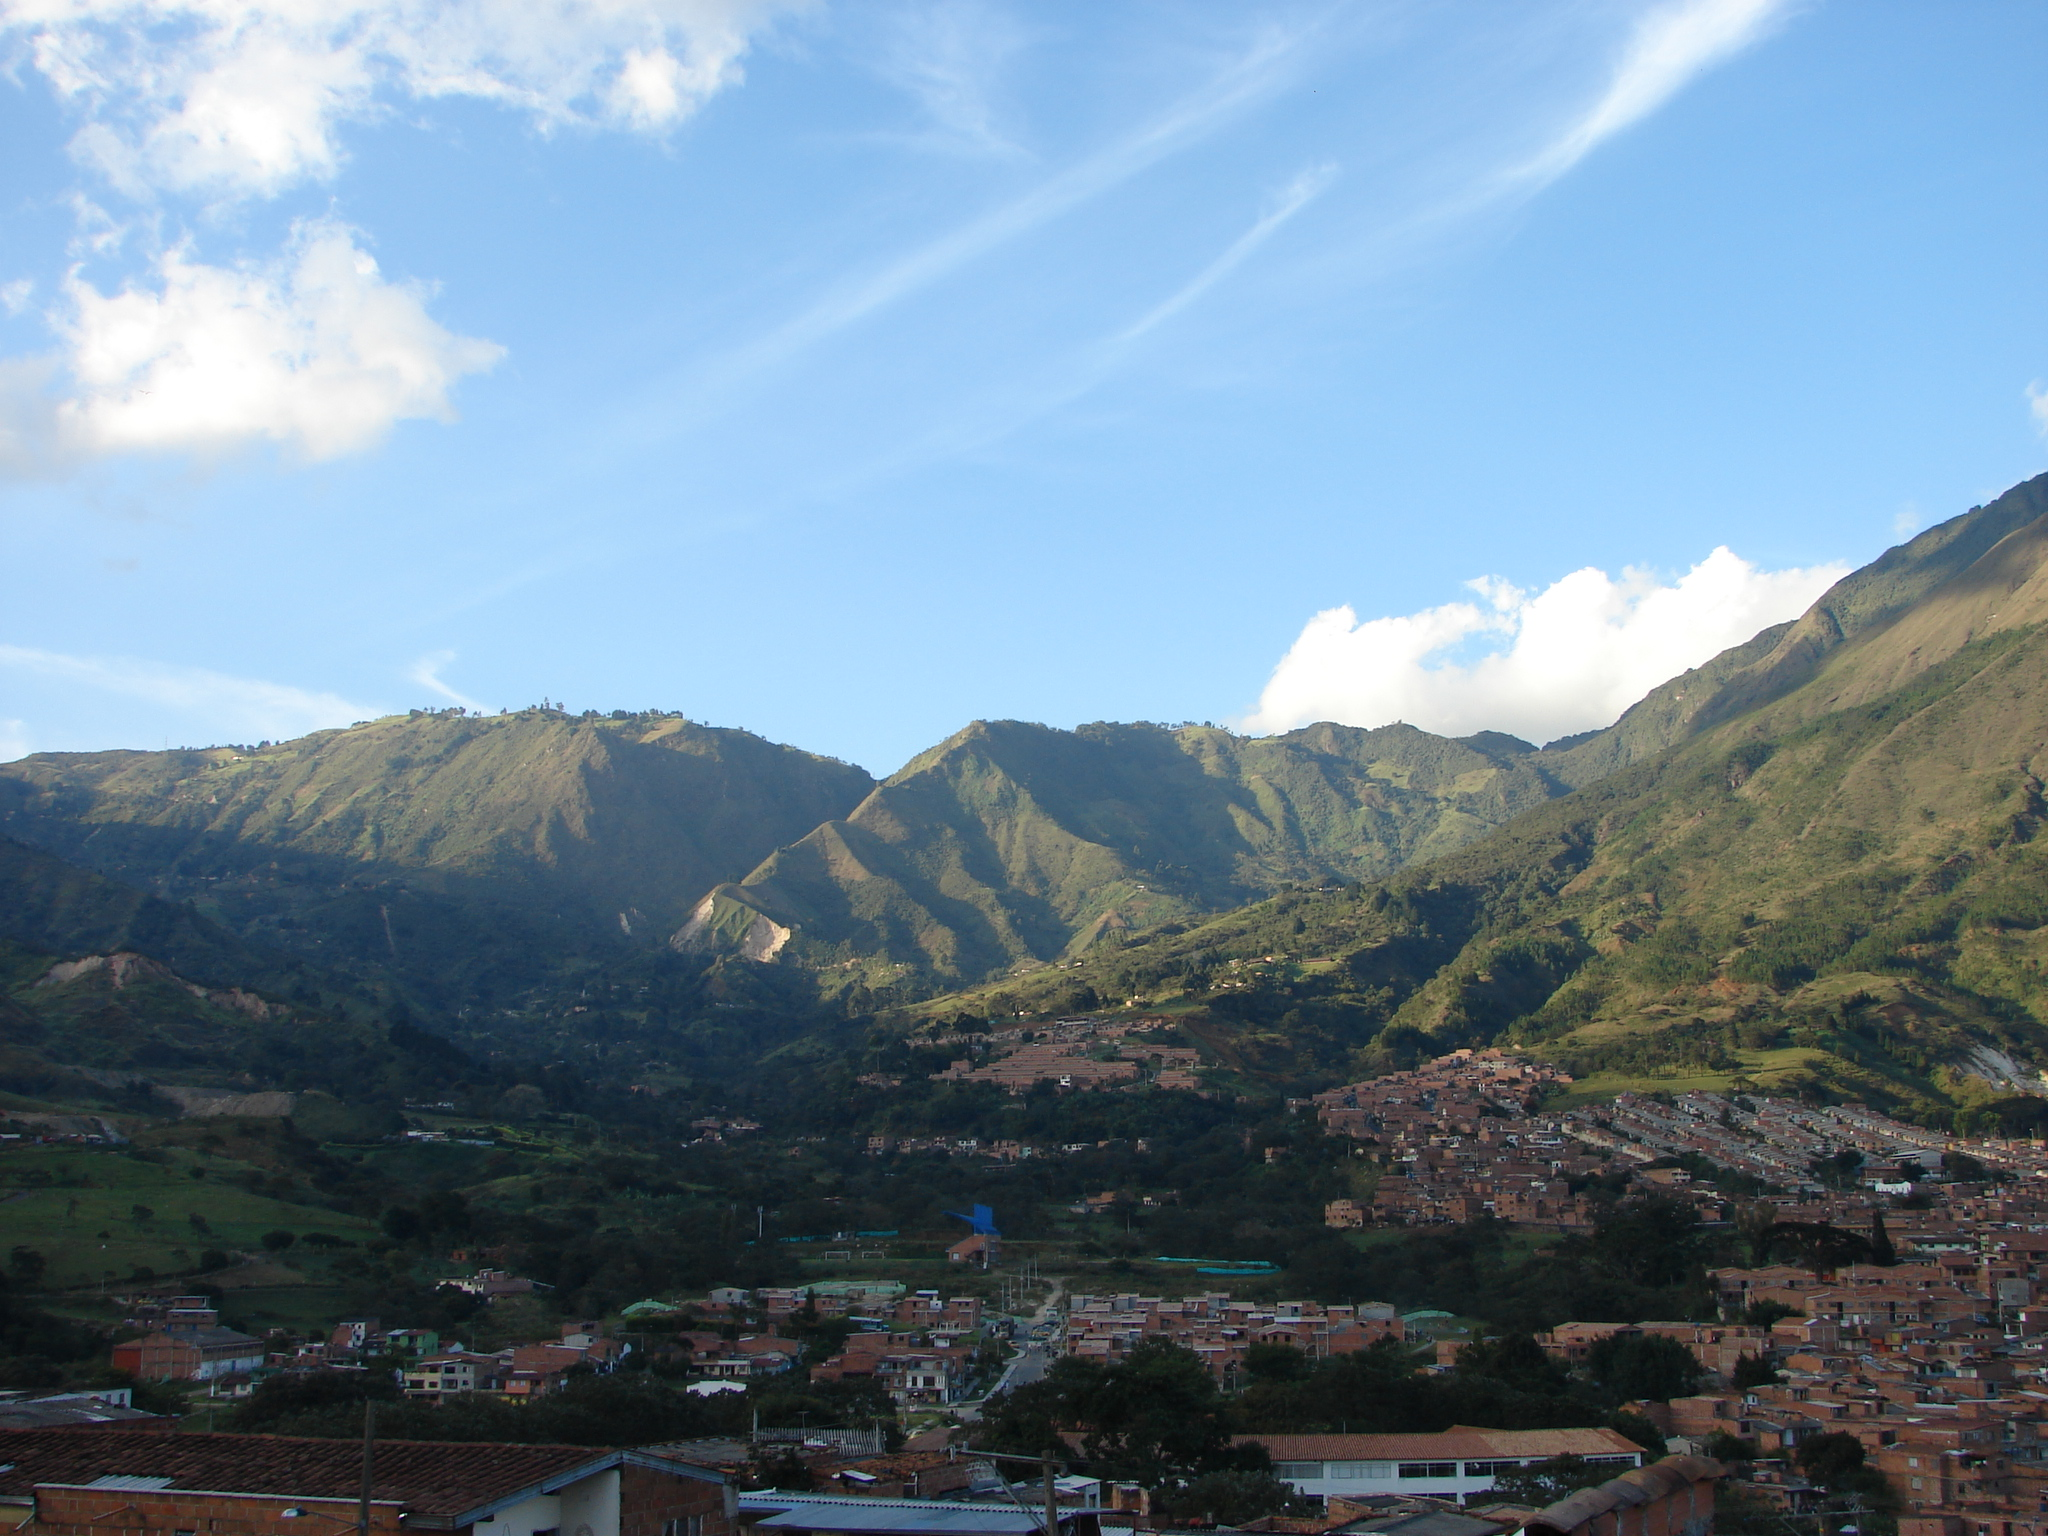 File:Bello-Montañas.jpg - Wikimedia Commons